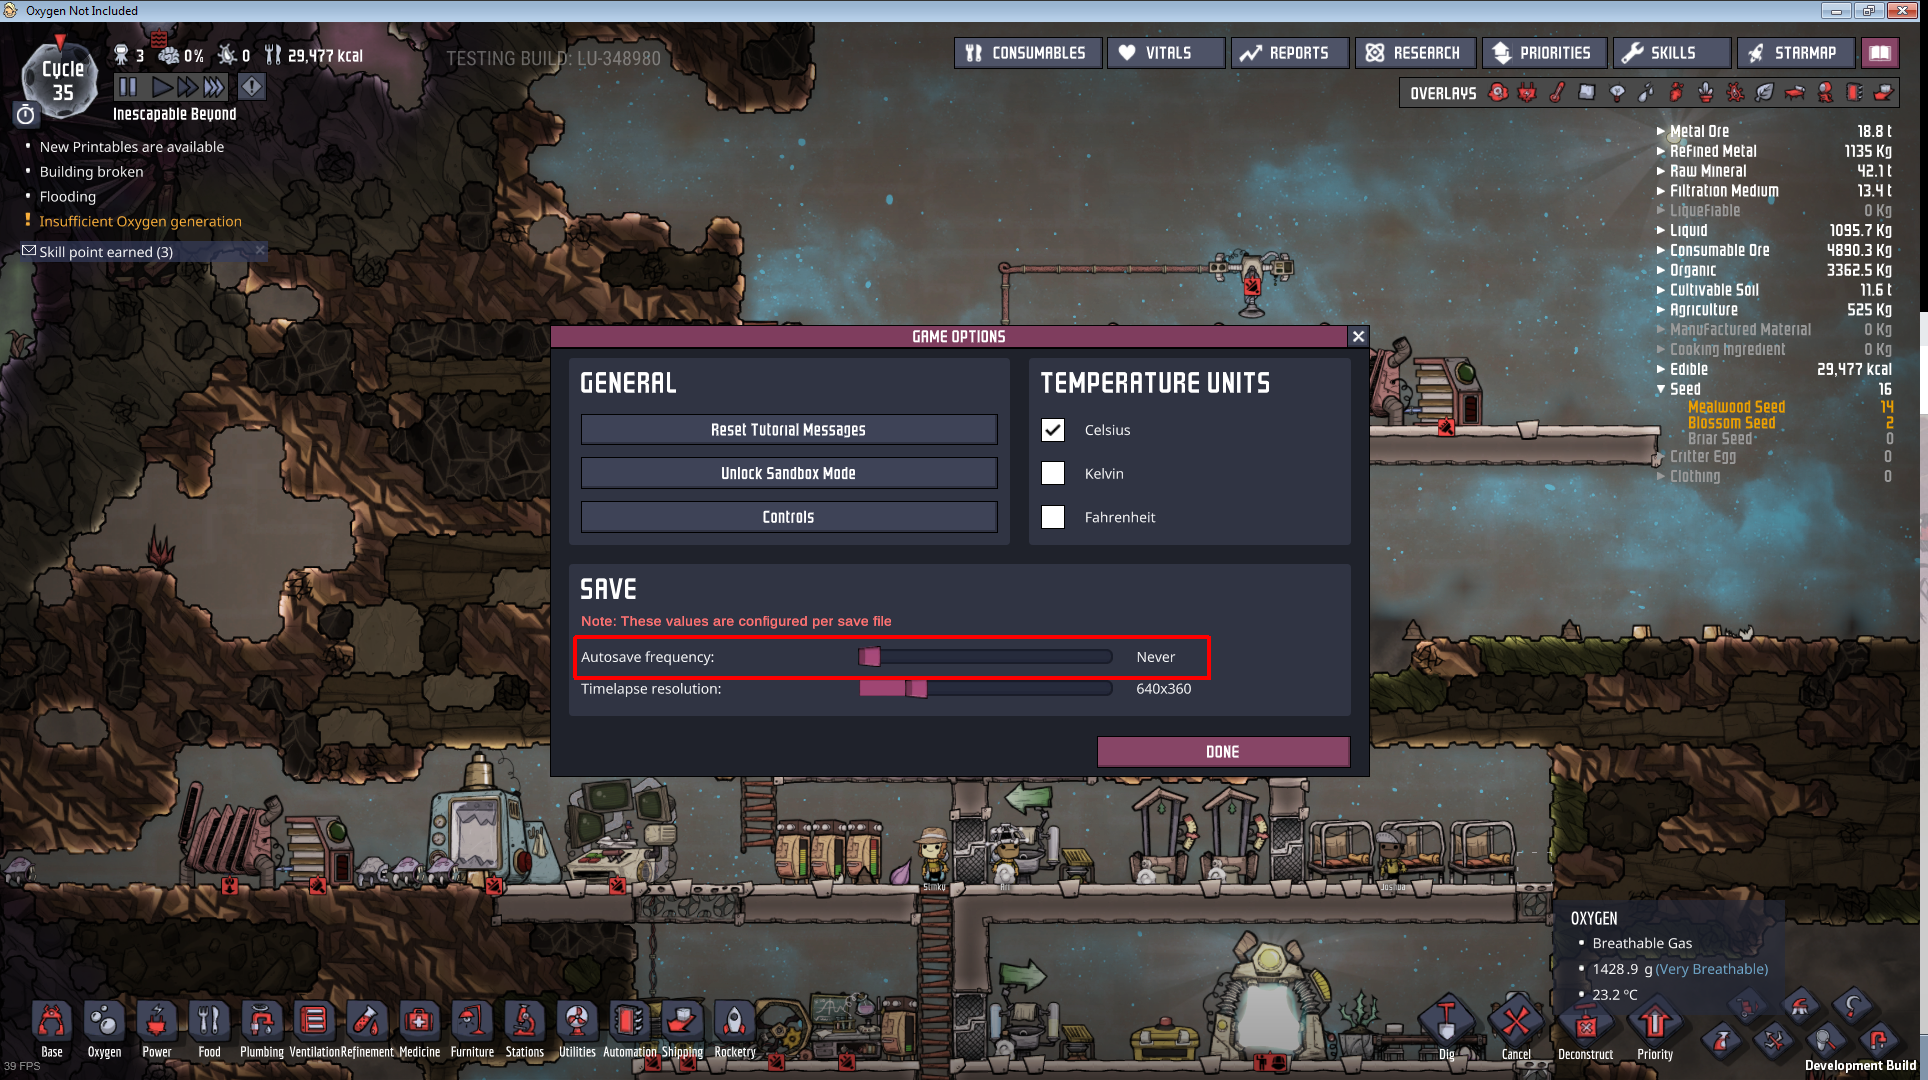 autosave frequency not functioning correctly - Oxygen Not Included